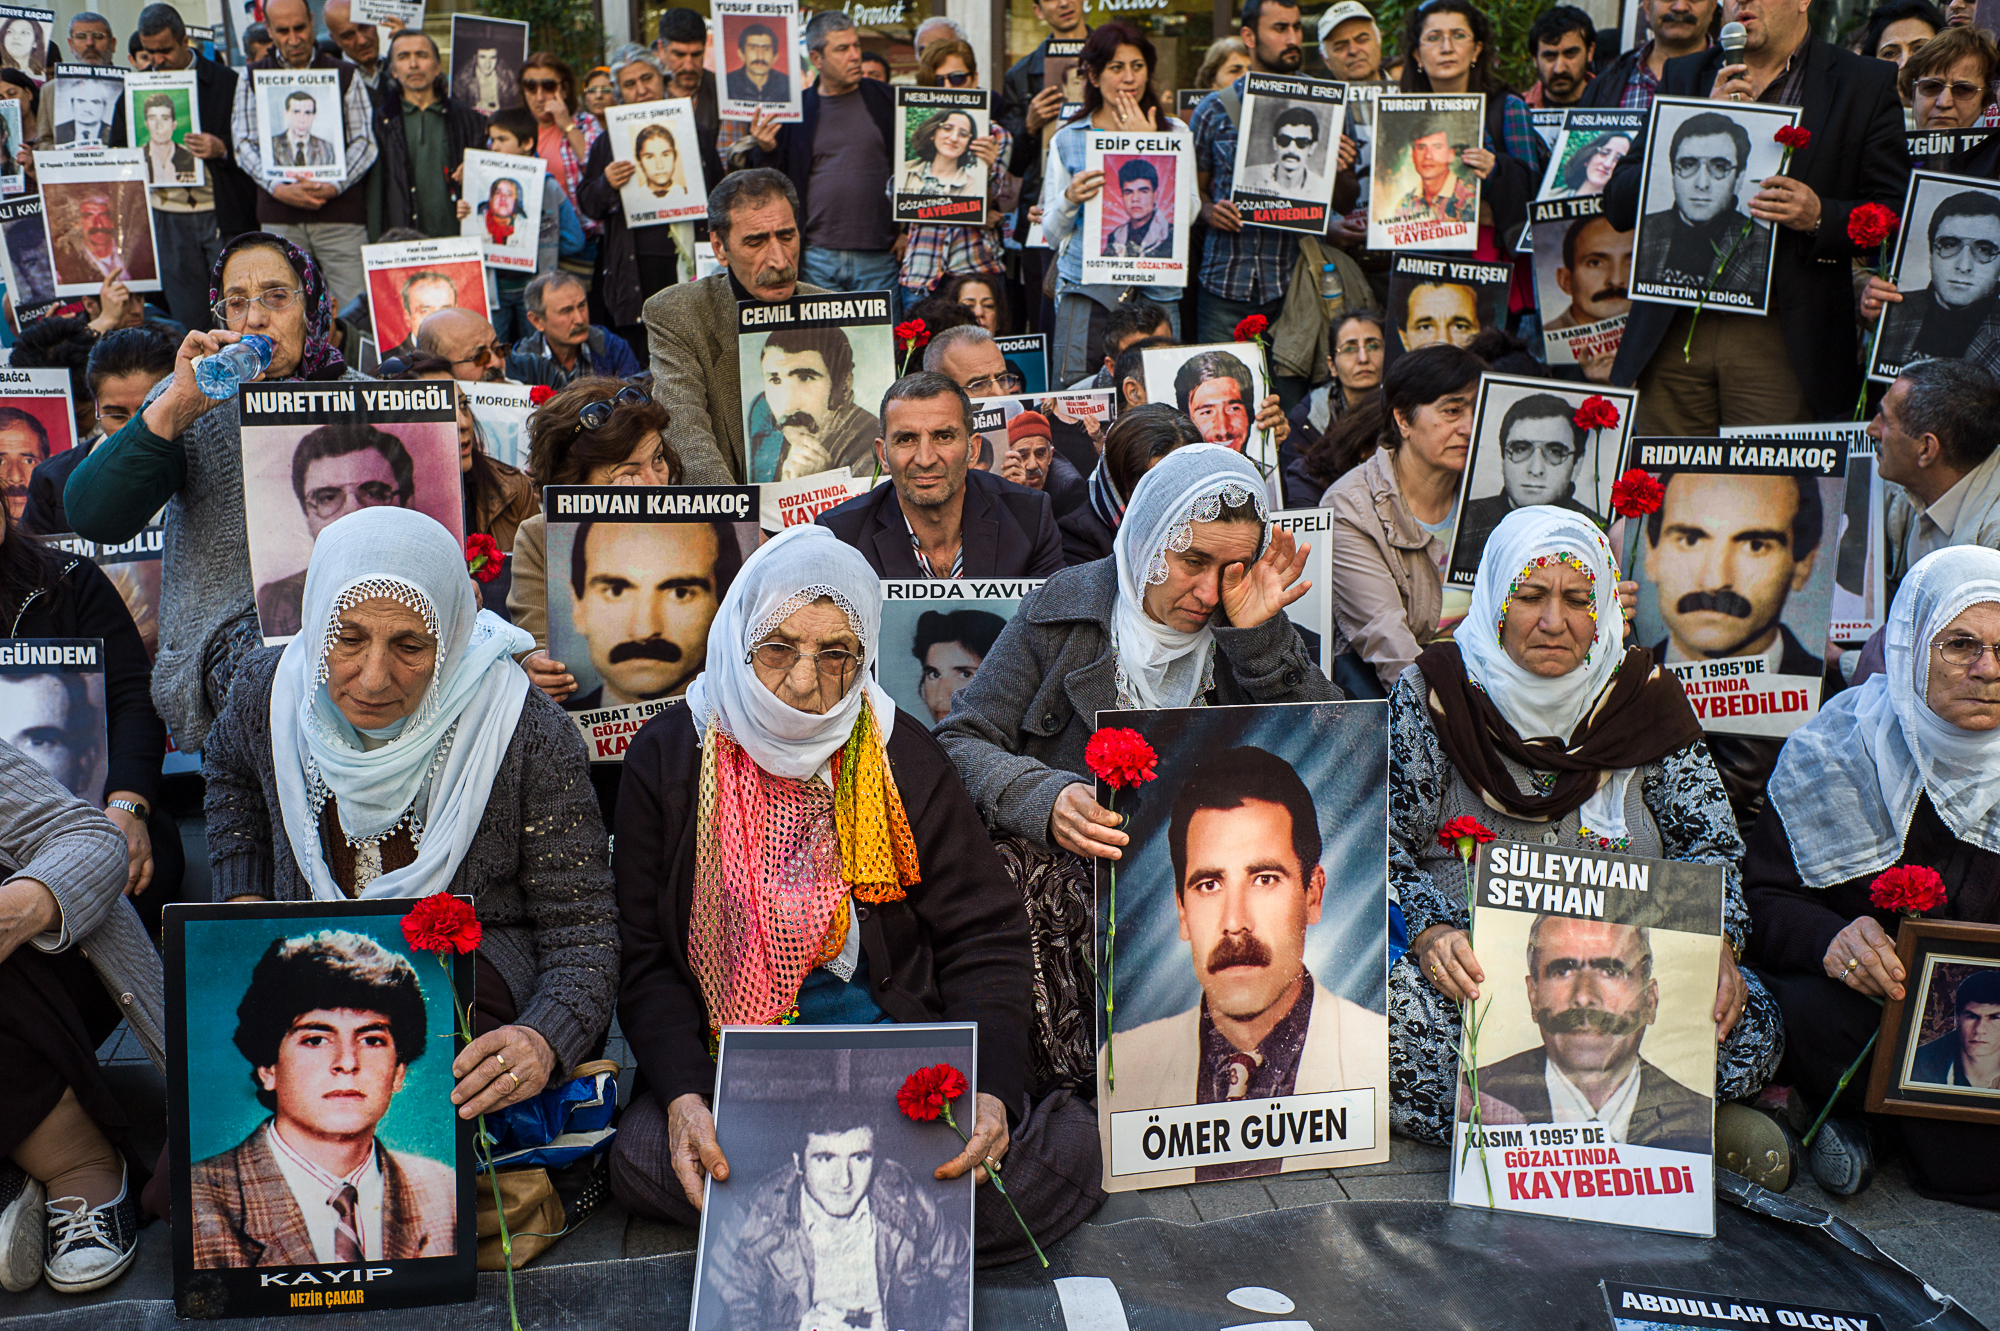 Memories : Kurdish demontration in Istanbul